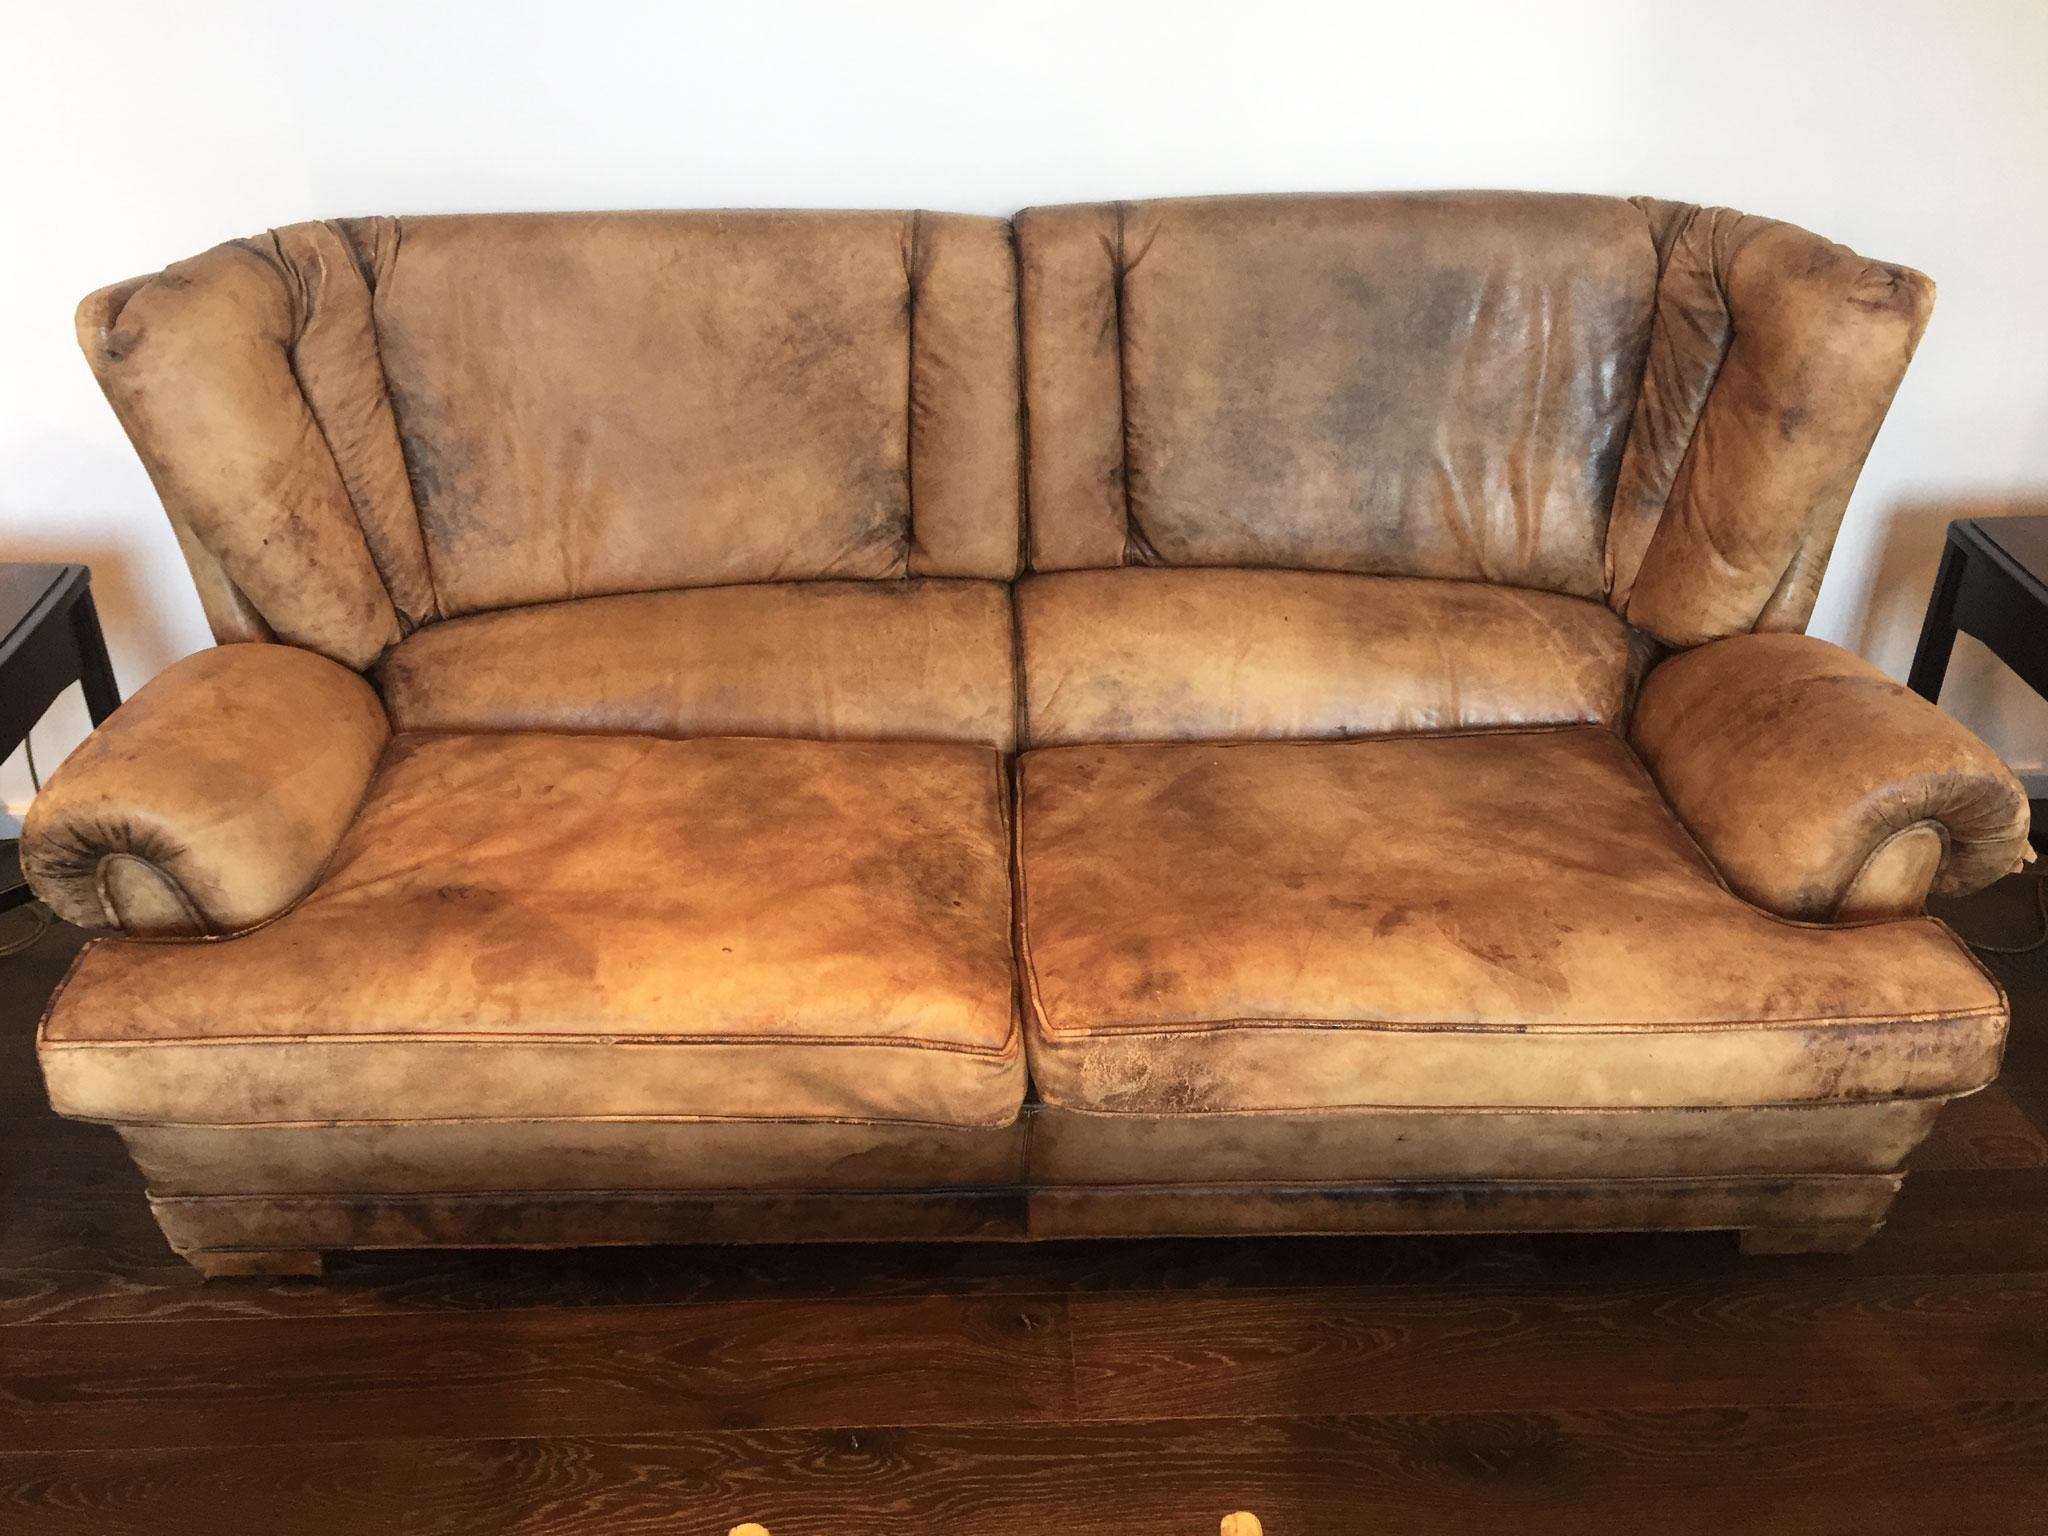 Rugged French Leather Settee From The 1950u0027s. This Comfortable Settee Has A  Handsome Aged Appeal